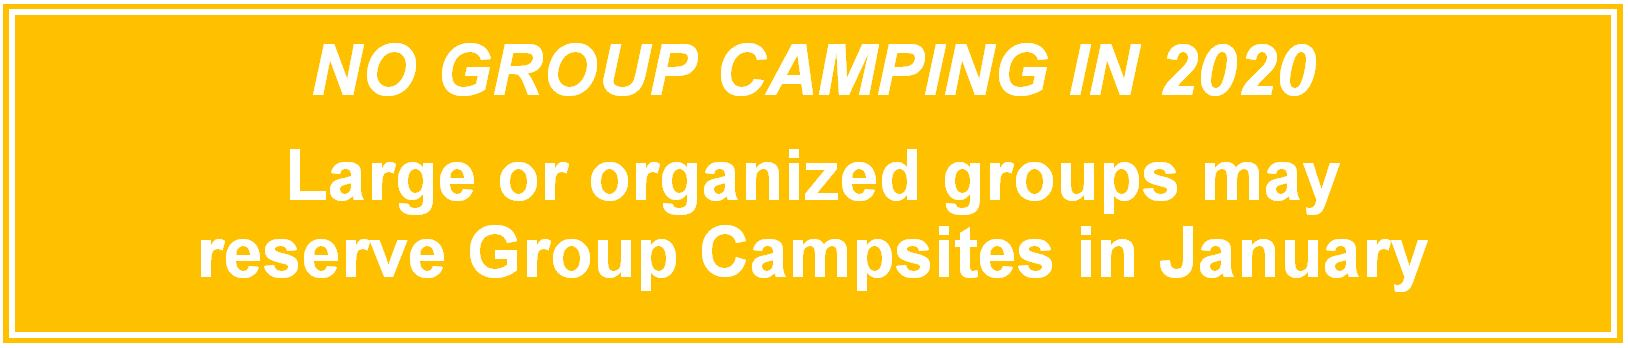 05262020 NO Group Camping